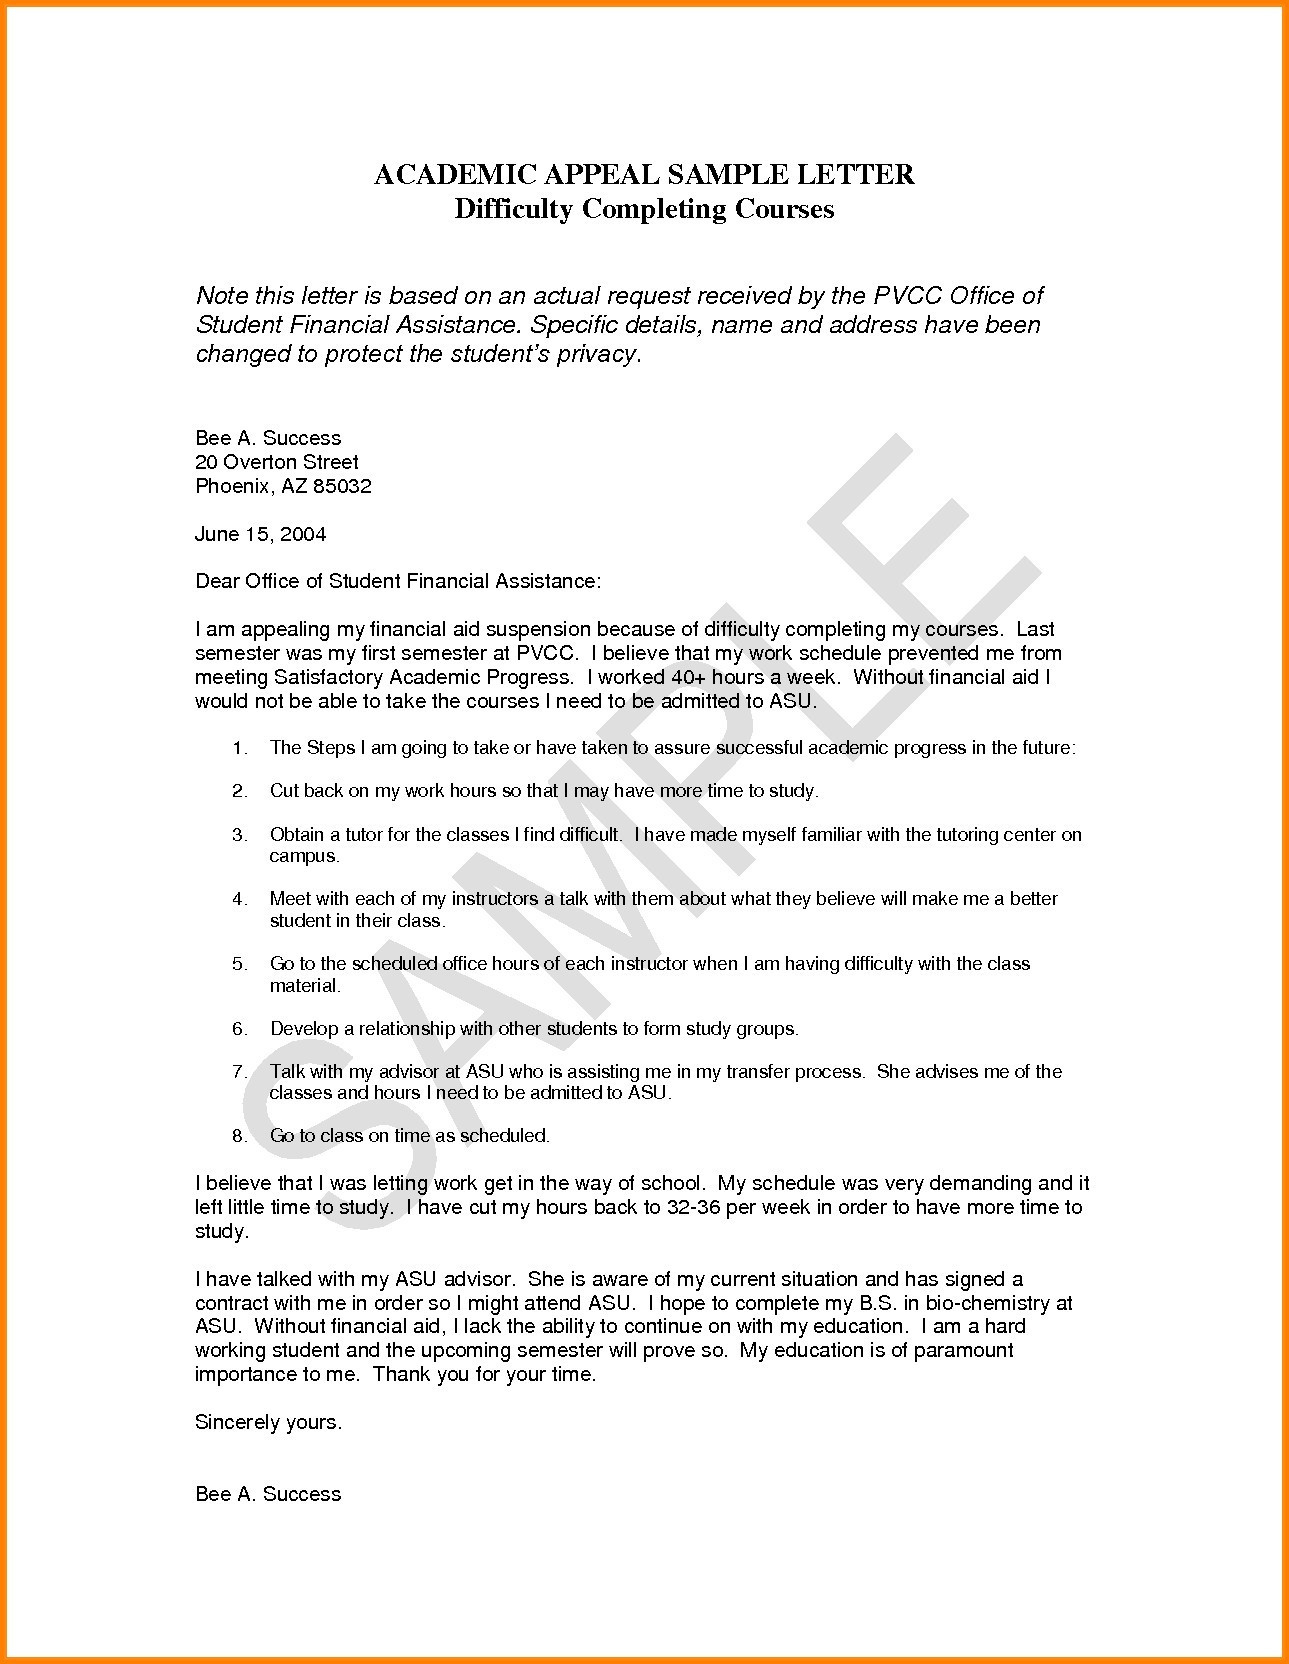 academic dismissal appeal letter template Collection-Dismissal Letter Template Academic Probation Letter Template Personalinjurylovete 17-j